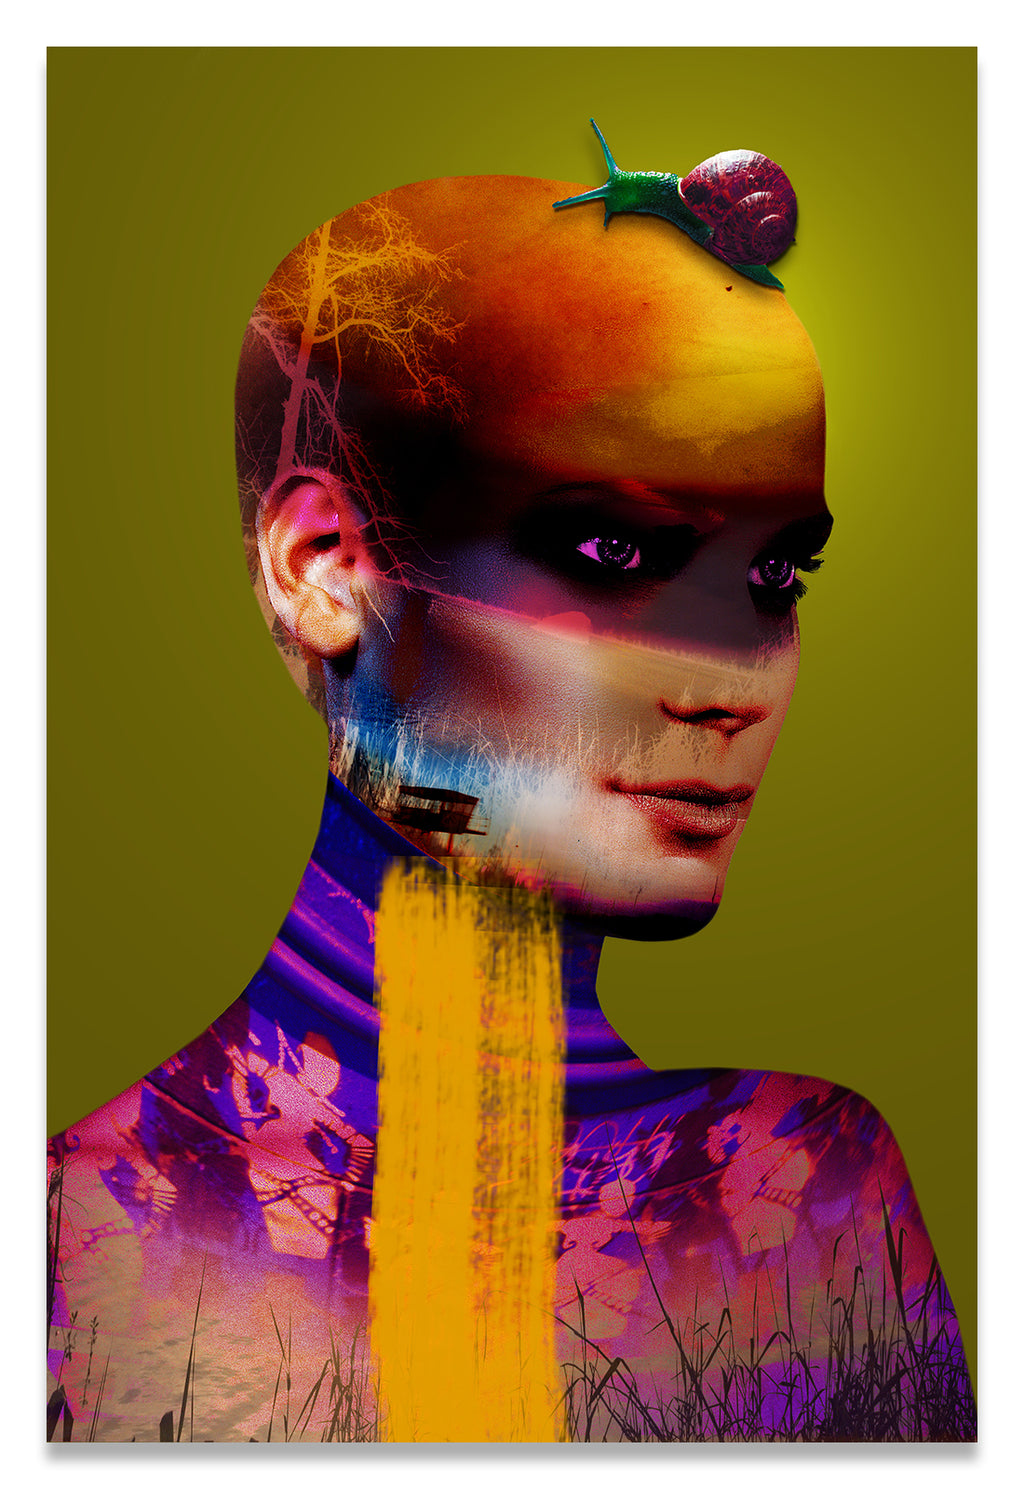 Colorful Chartreuse Surreal Portrait of a Bald Woman with a Snail on her Head.